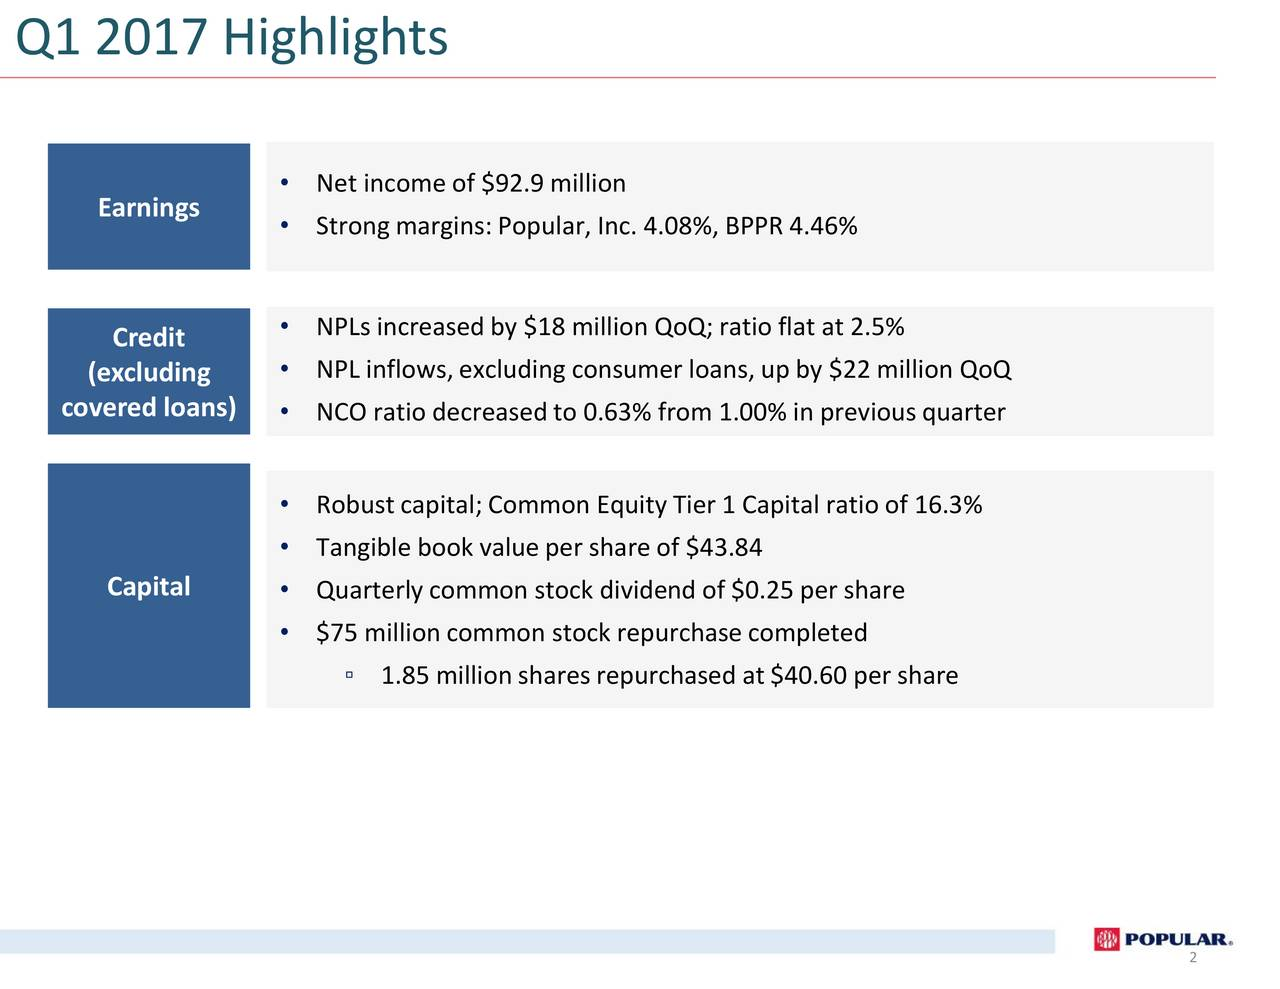 Earnings  Net income of $92.9 million Strong margins:Popular, Inc. 4.08%, BPPR 4.46% Credit  NPLs increased by $18 million QoQ; ratio flat at 2.5% (excluding  NPL inflows, excluding consumer loans, up by $22 million QoQ covered loans)  NCO ratio decreased to 0.63% from 1.00% in previousquarter Robust capital; Common Equity Tier 1 Capital ratio of 16.3% Tangible book value per share of $43.84 Capital Quarterly common stock dividend of $0.25 per share $75 million common stock repurchase completed 1.85 million shares repurchased at $40.60 per share 2